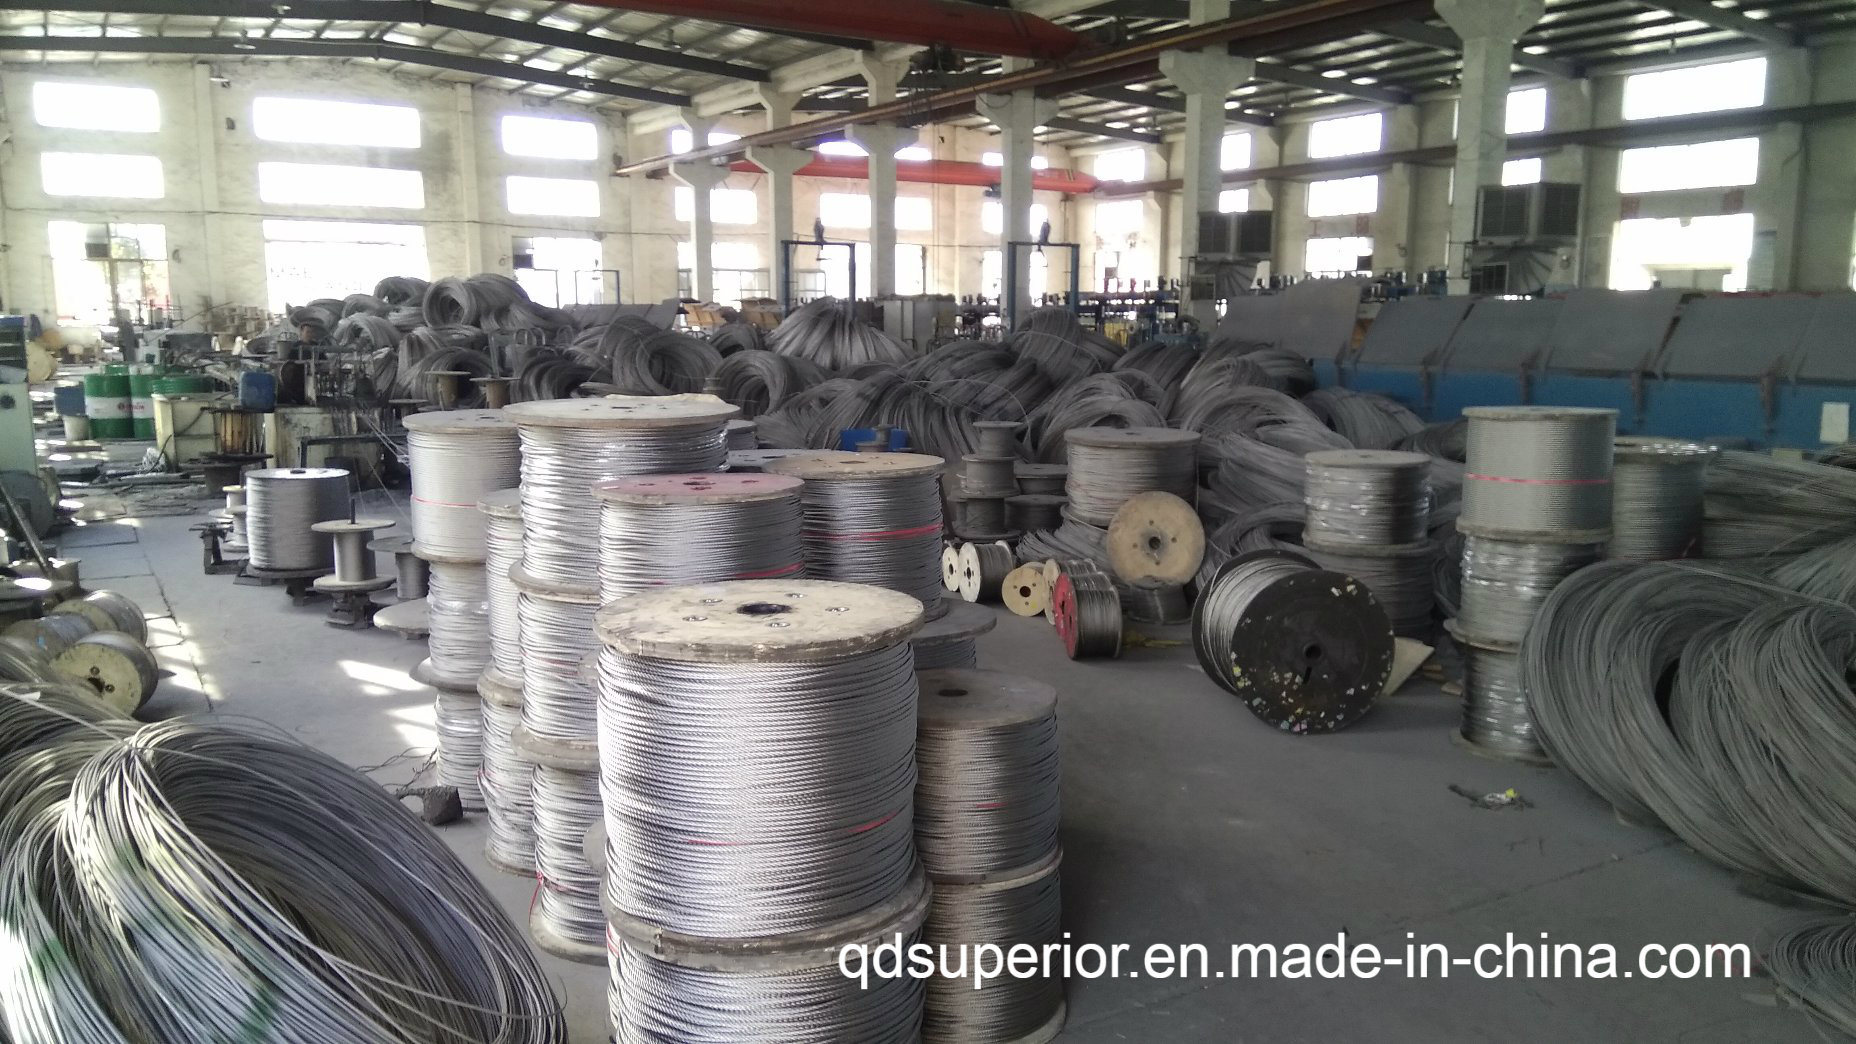 China Galvanized Steel Wire Rope Cable (6X36 Iwrc) - China Wire Rope ...